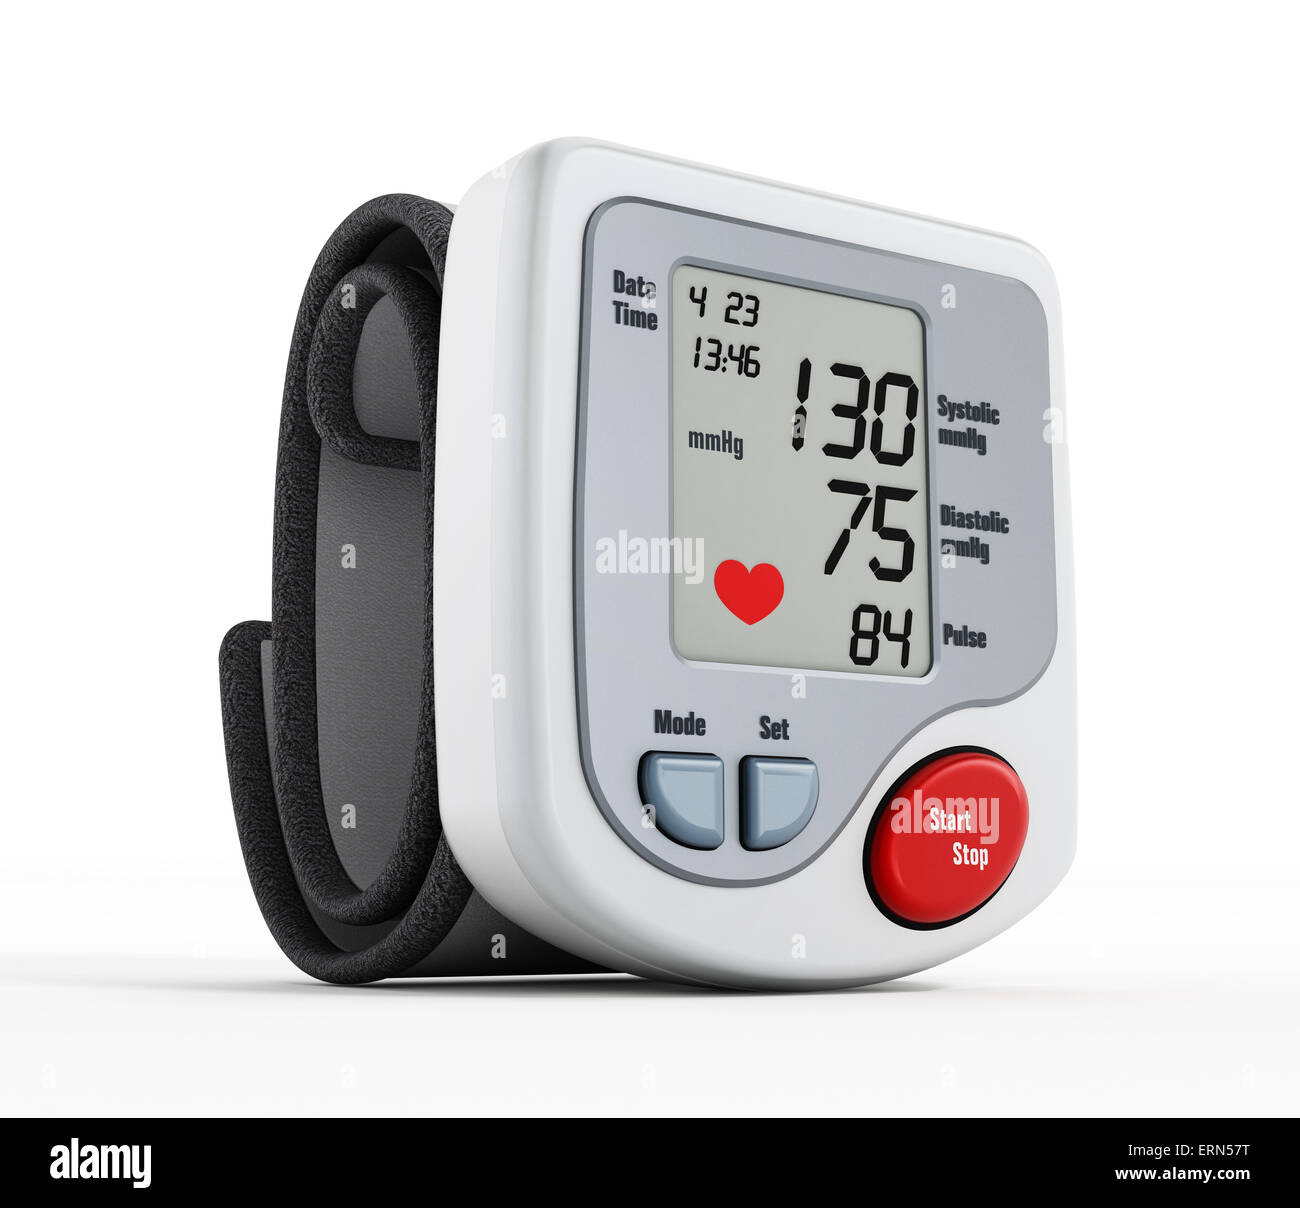 Digital blood pressure monitor isolated on white background - Stock Image